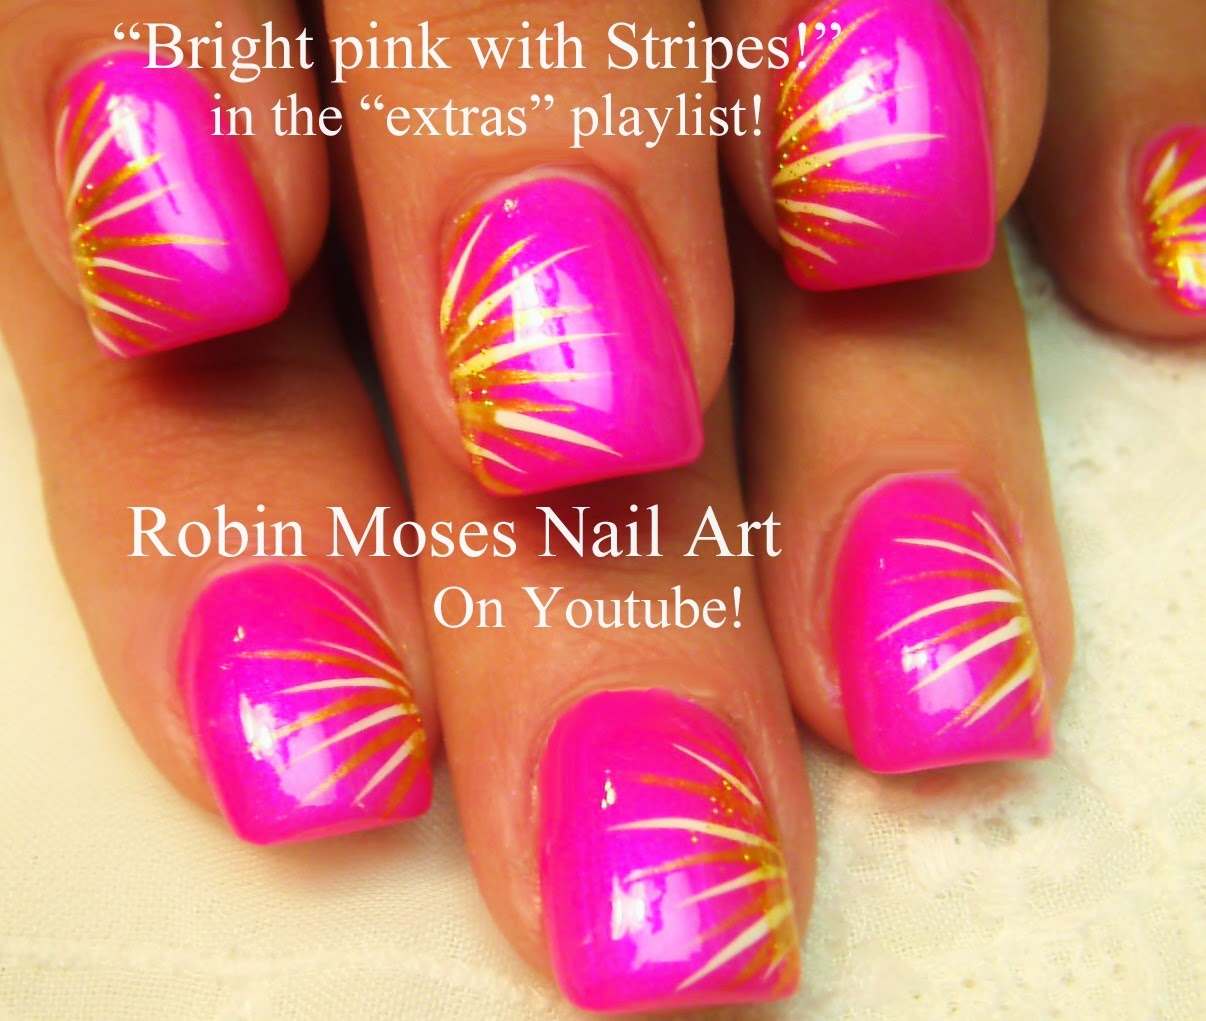 Robin moses nail art may 2011 pretty in pink isnt she pretty in pink isnt she prinsesfo Image collections